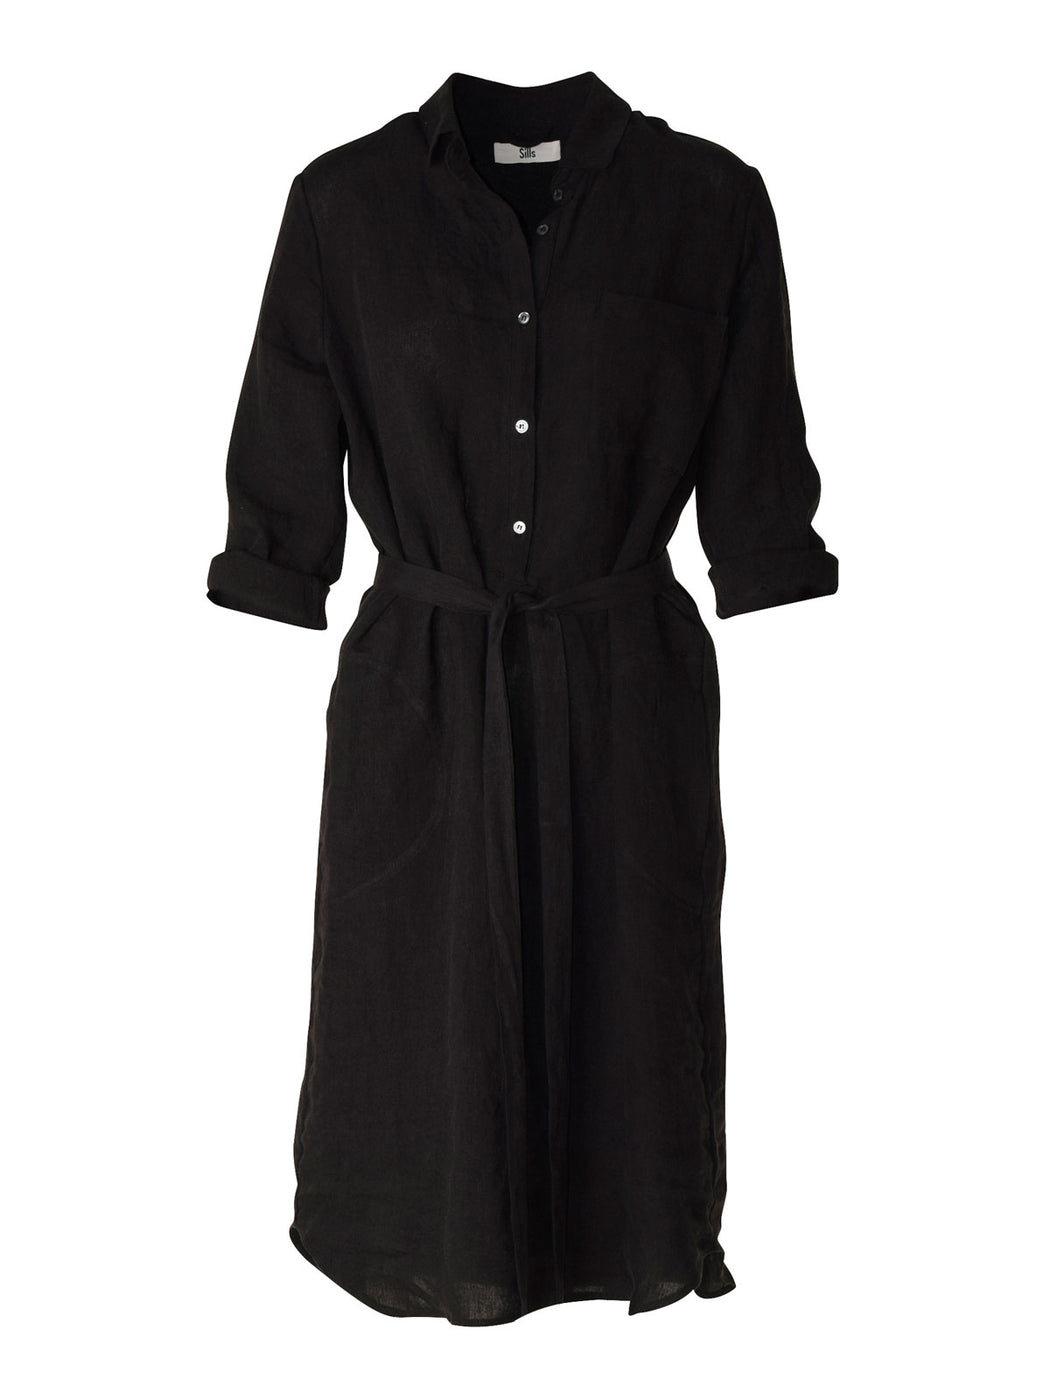 Anais Shirt Dress - Black | Shop Sills in NZ at Wallace & Gibbs NZ